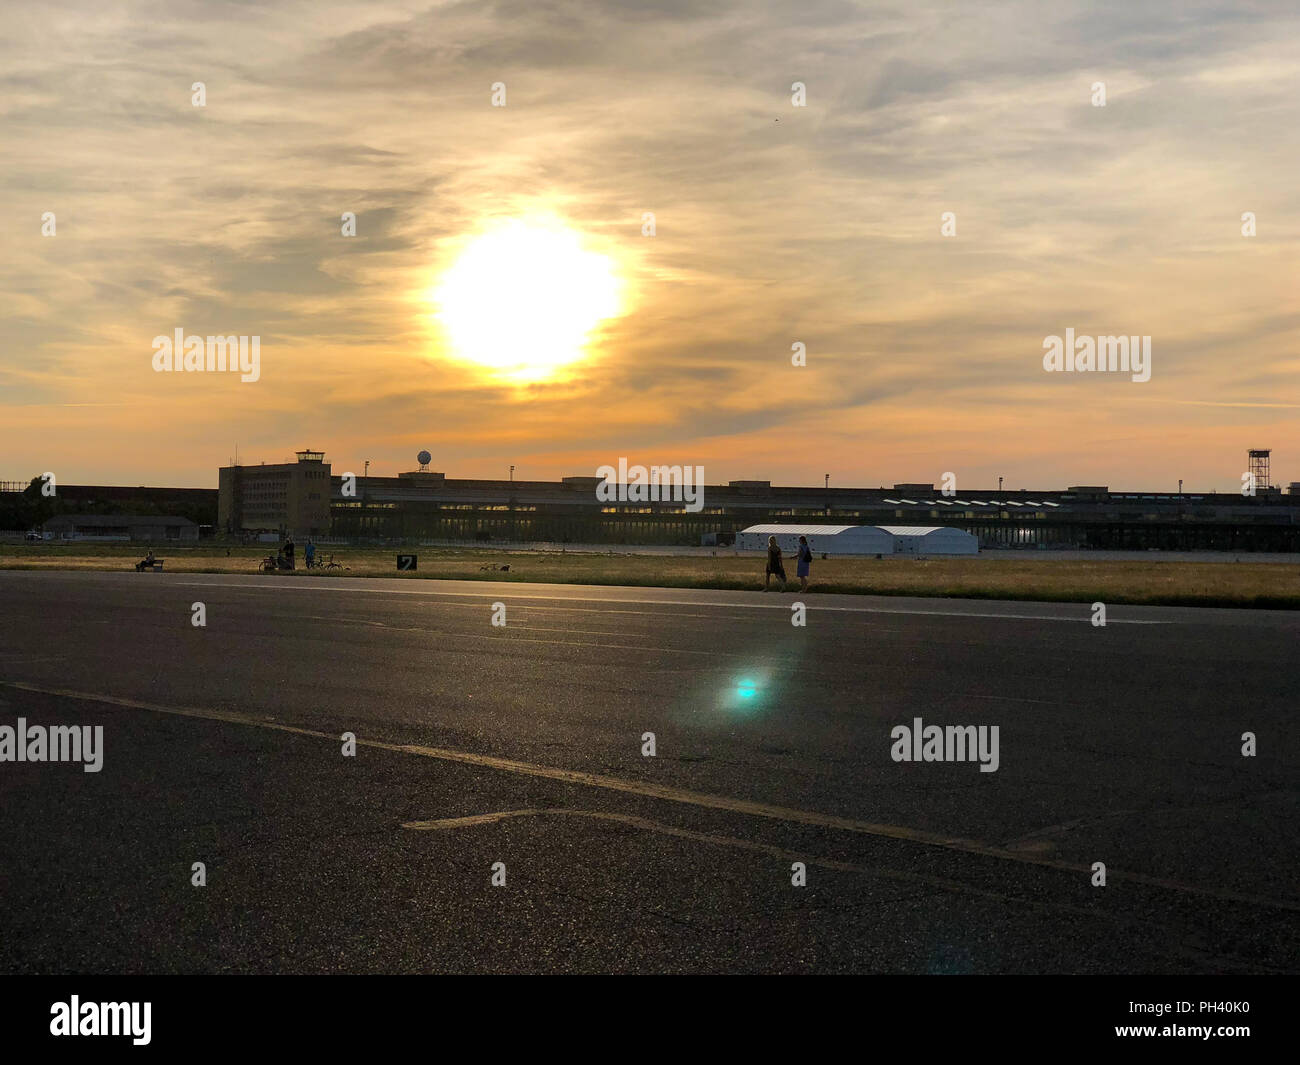 Summer sunset at Tempelhofer Feld, a park at a former airport in Berlin, Germany in 2018. - Stock Image